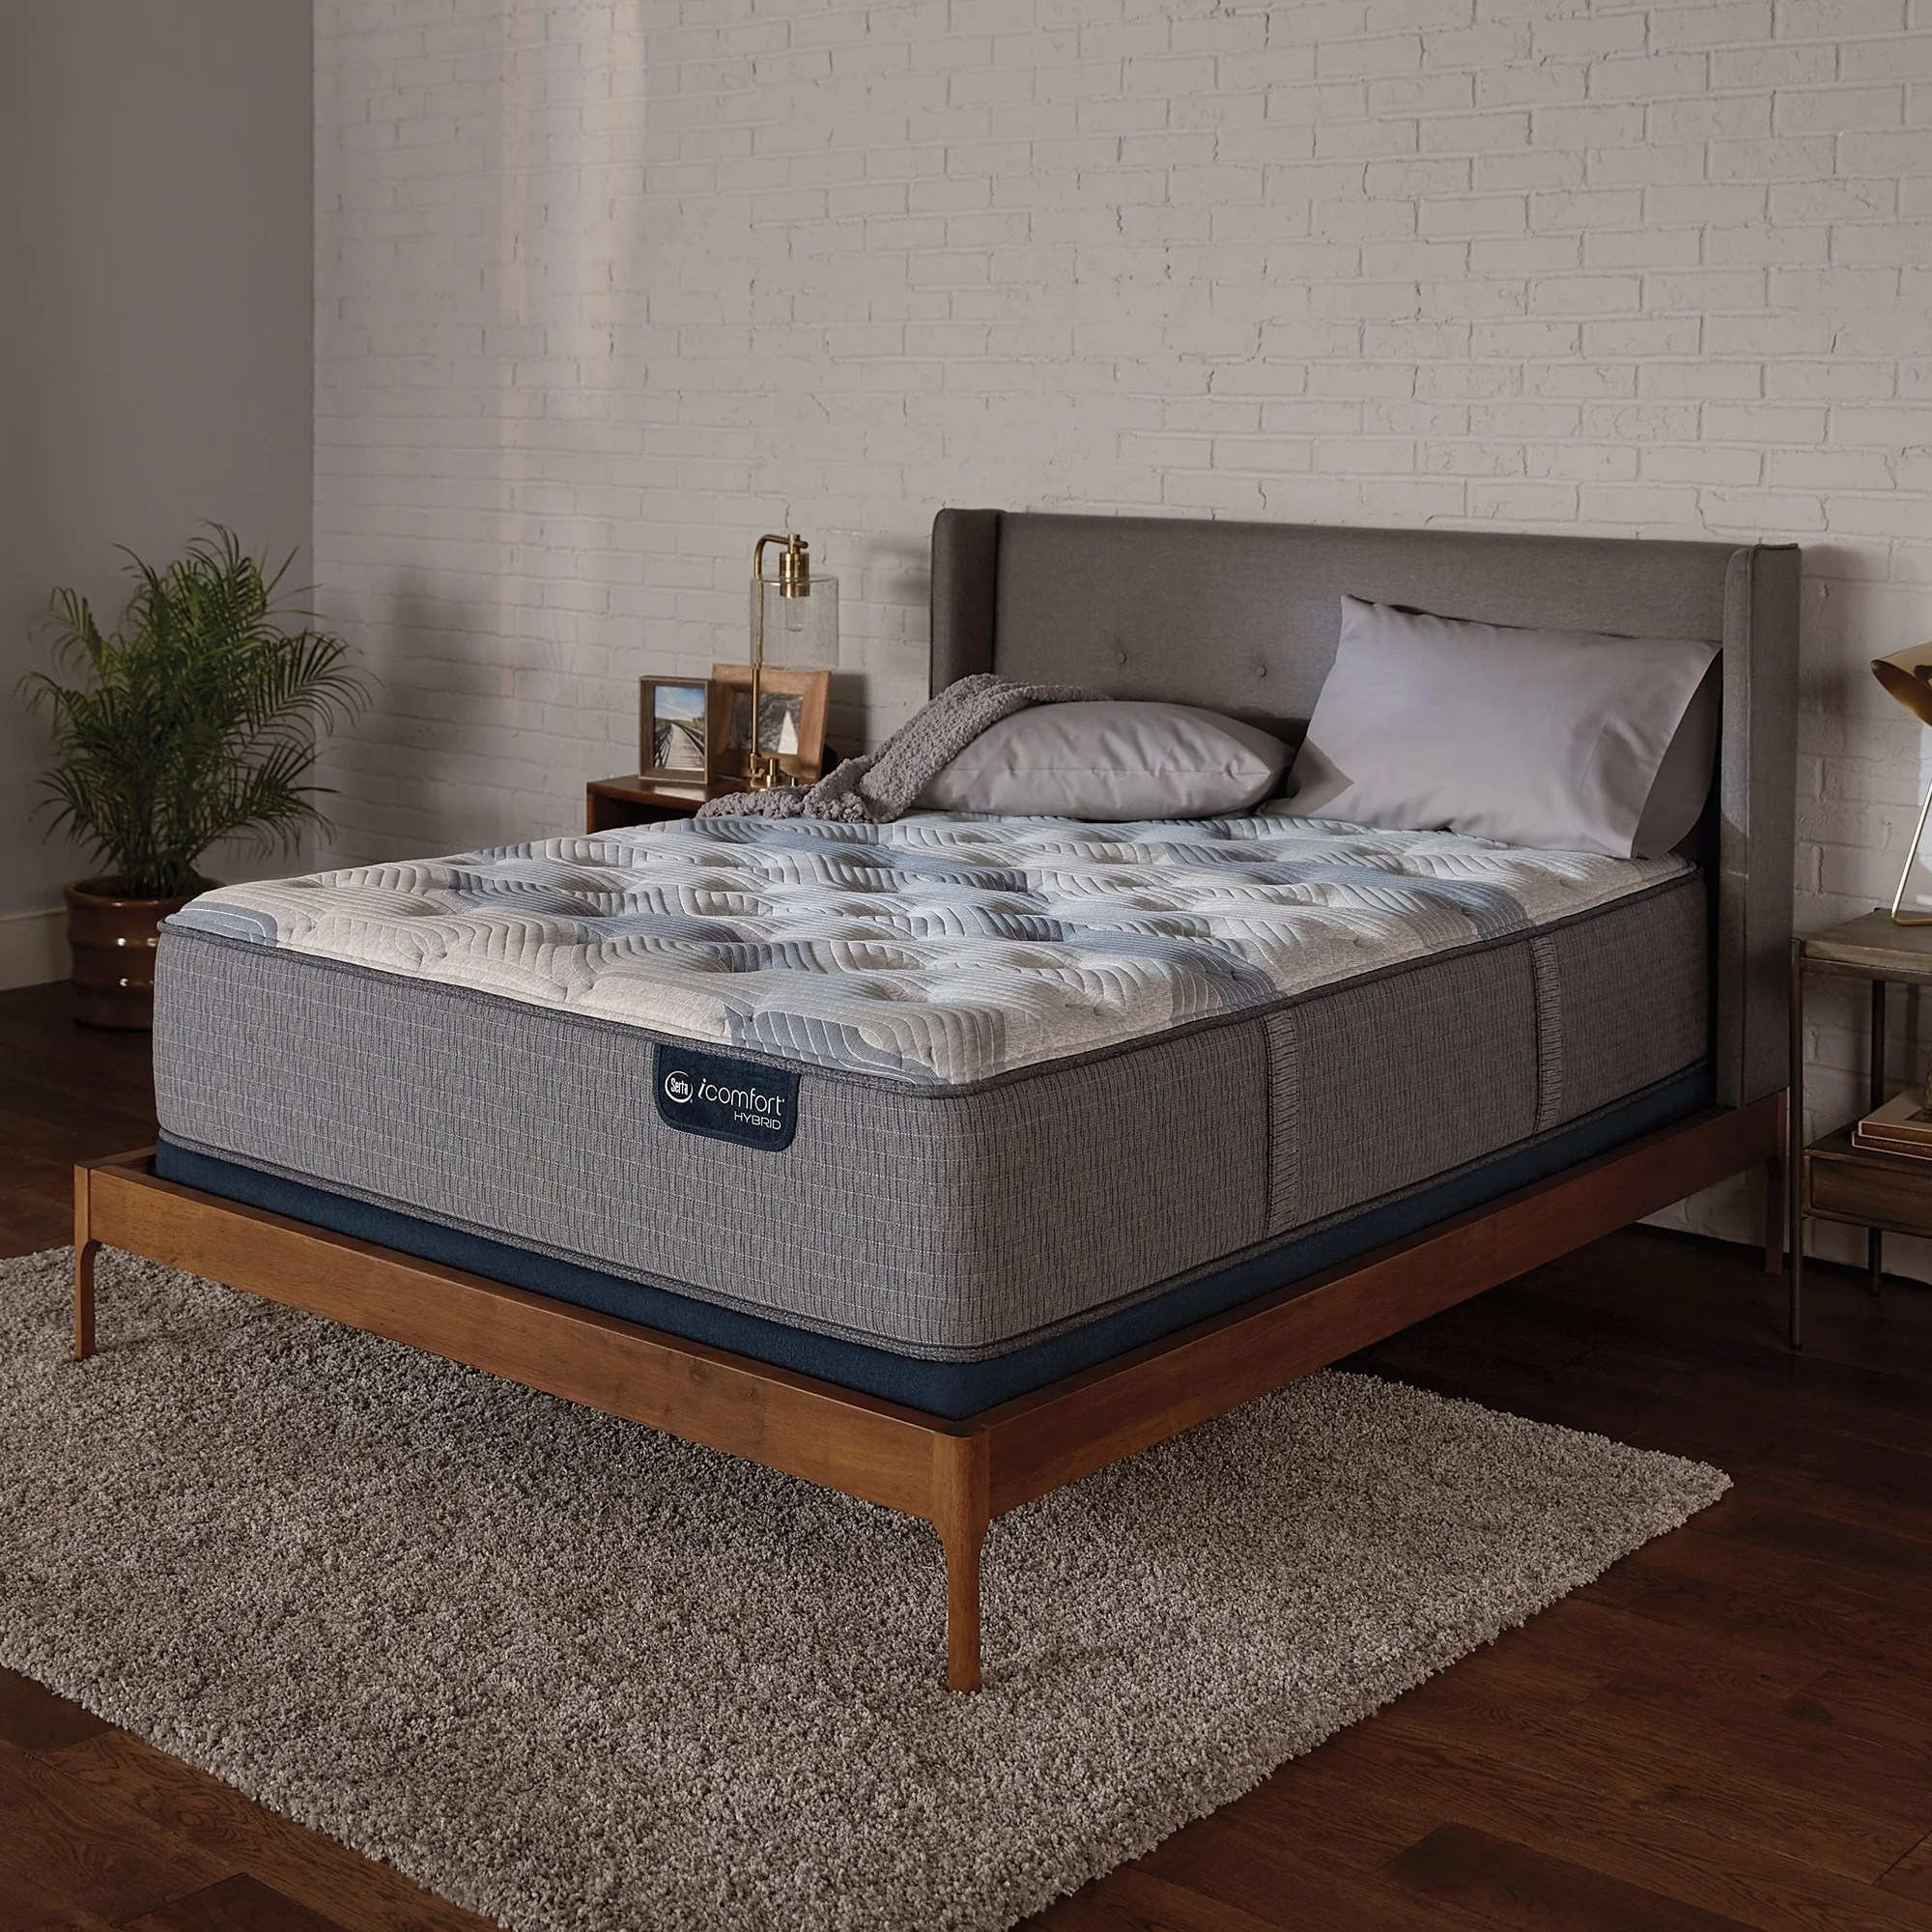 Serta Mattress Uk Buy Serta Mattresses Online At Overstock Our Best Bedroom